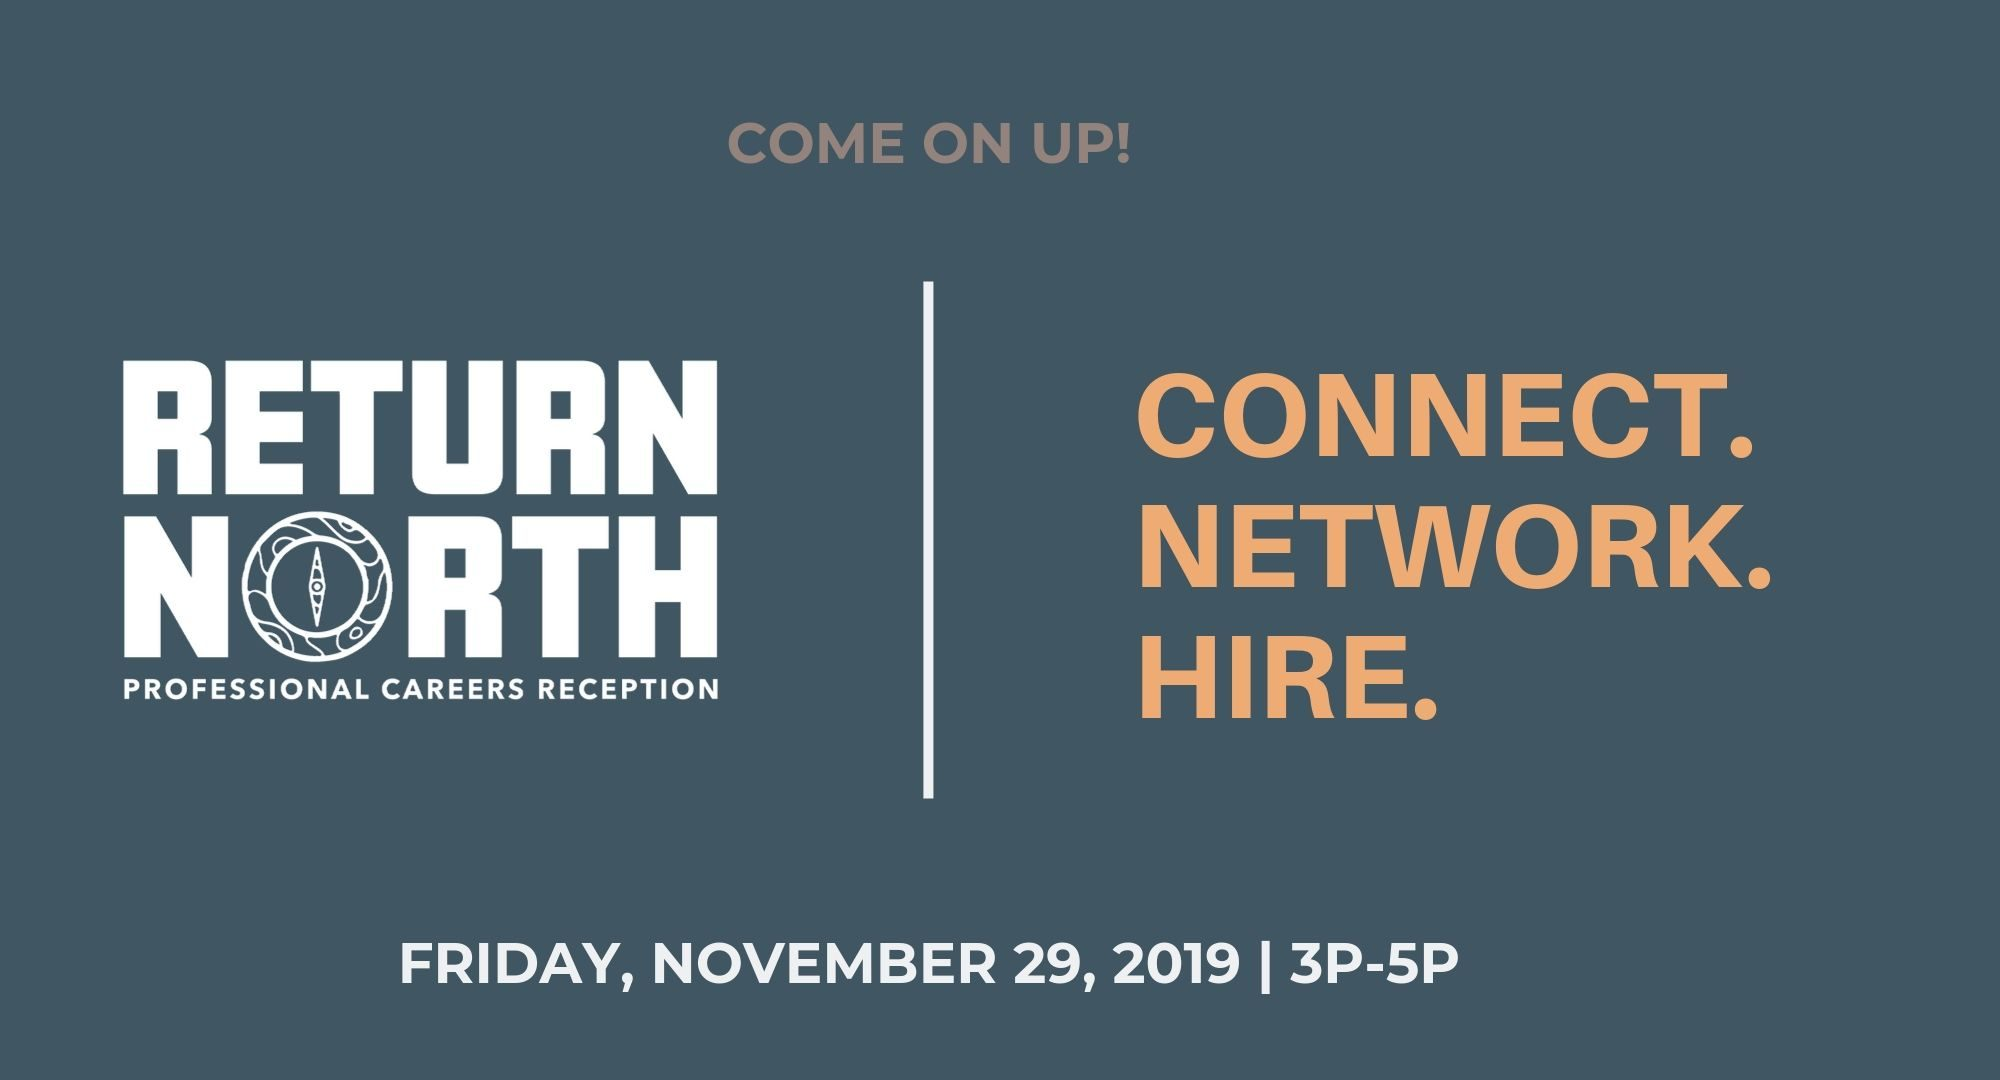 Event flyer with the following printed on it: Come on UP! Connect. Network. Hire. Return North. Friday, November 29th, 2019 from 3 to 5 PM.